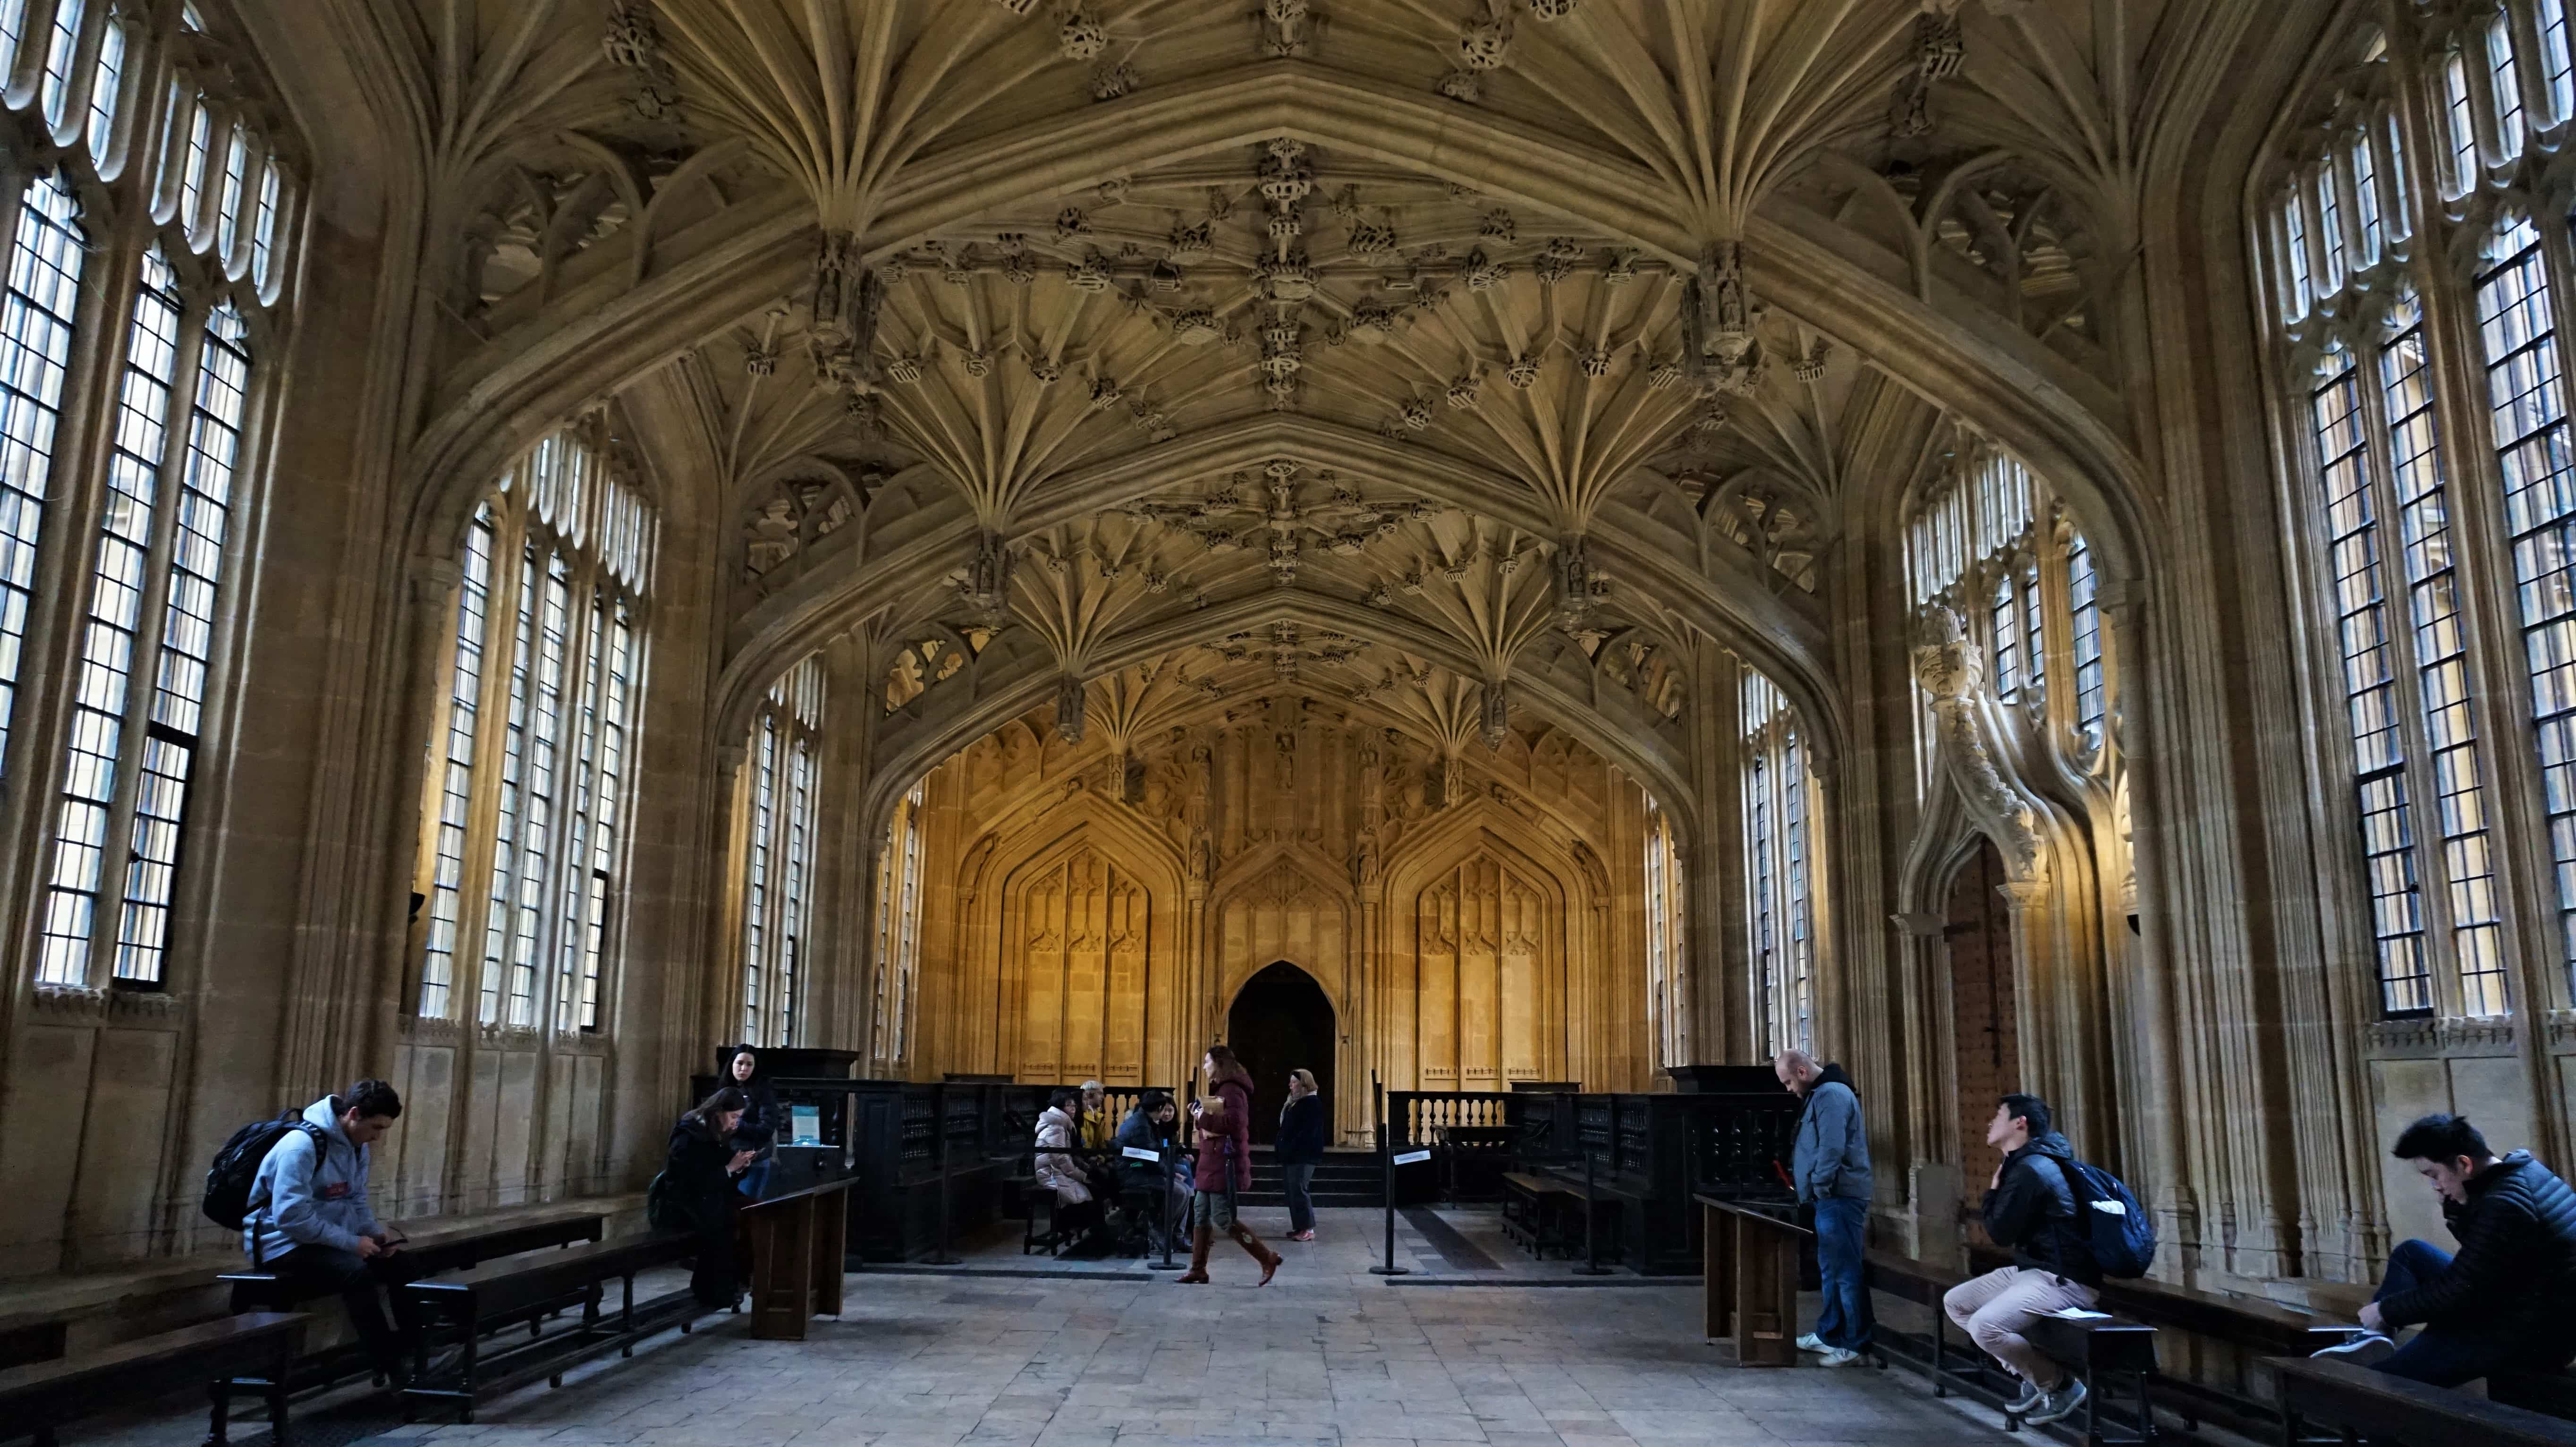 The Divinity School in Oxford